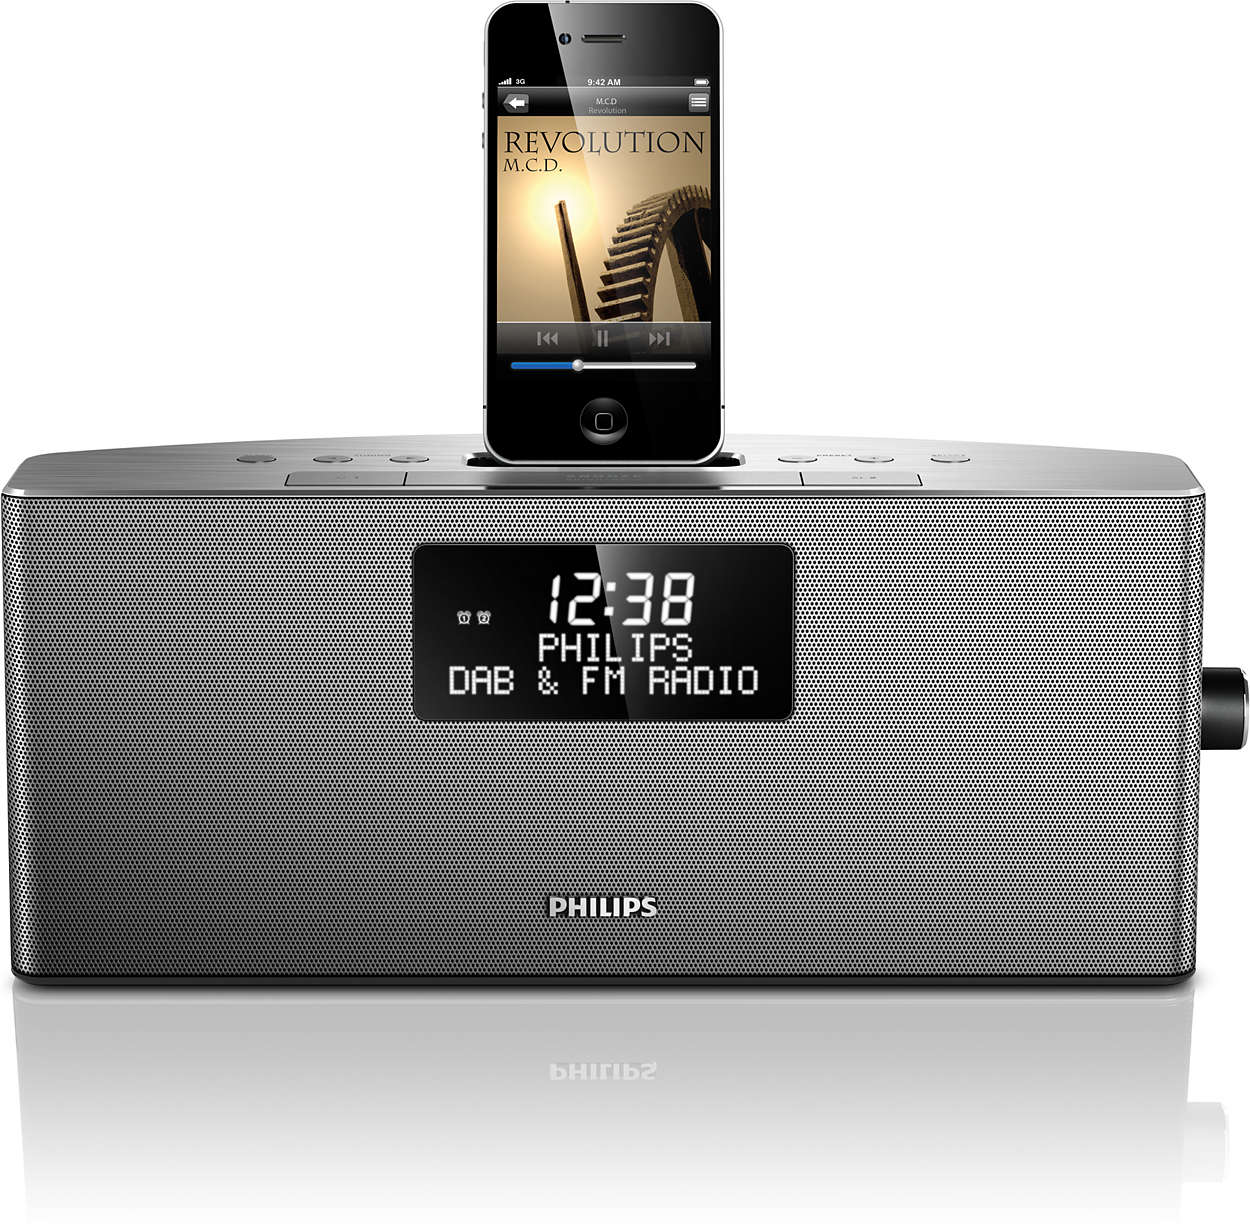 docking station for ipod iphone ajb7038d 10 philips. Black Bedroom Furniture Sets. Home Design Ideas